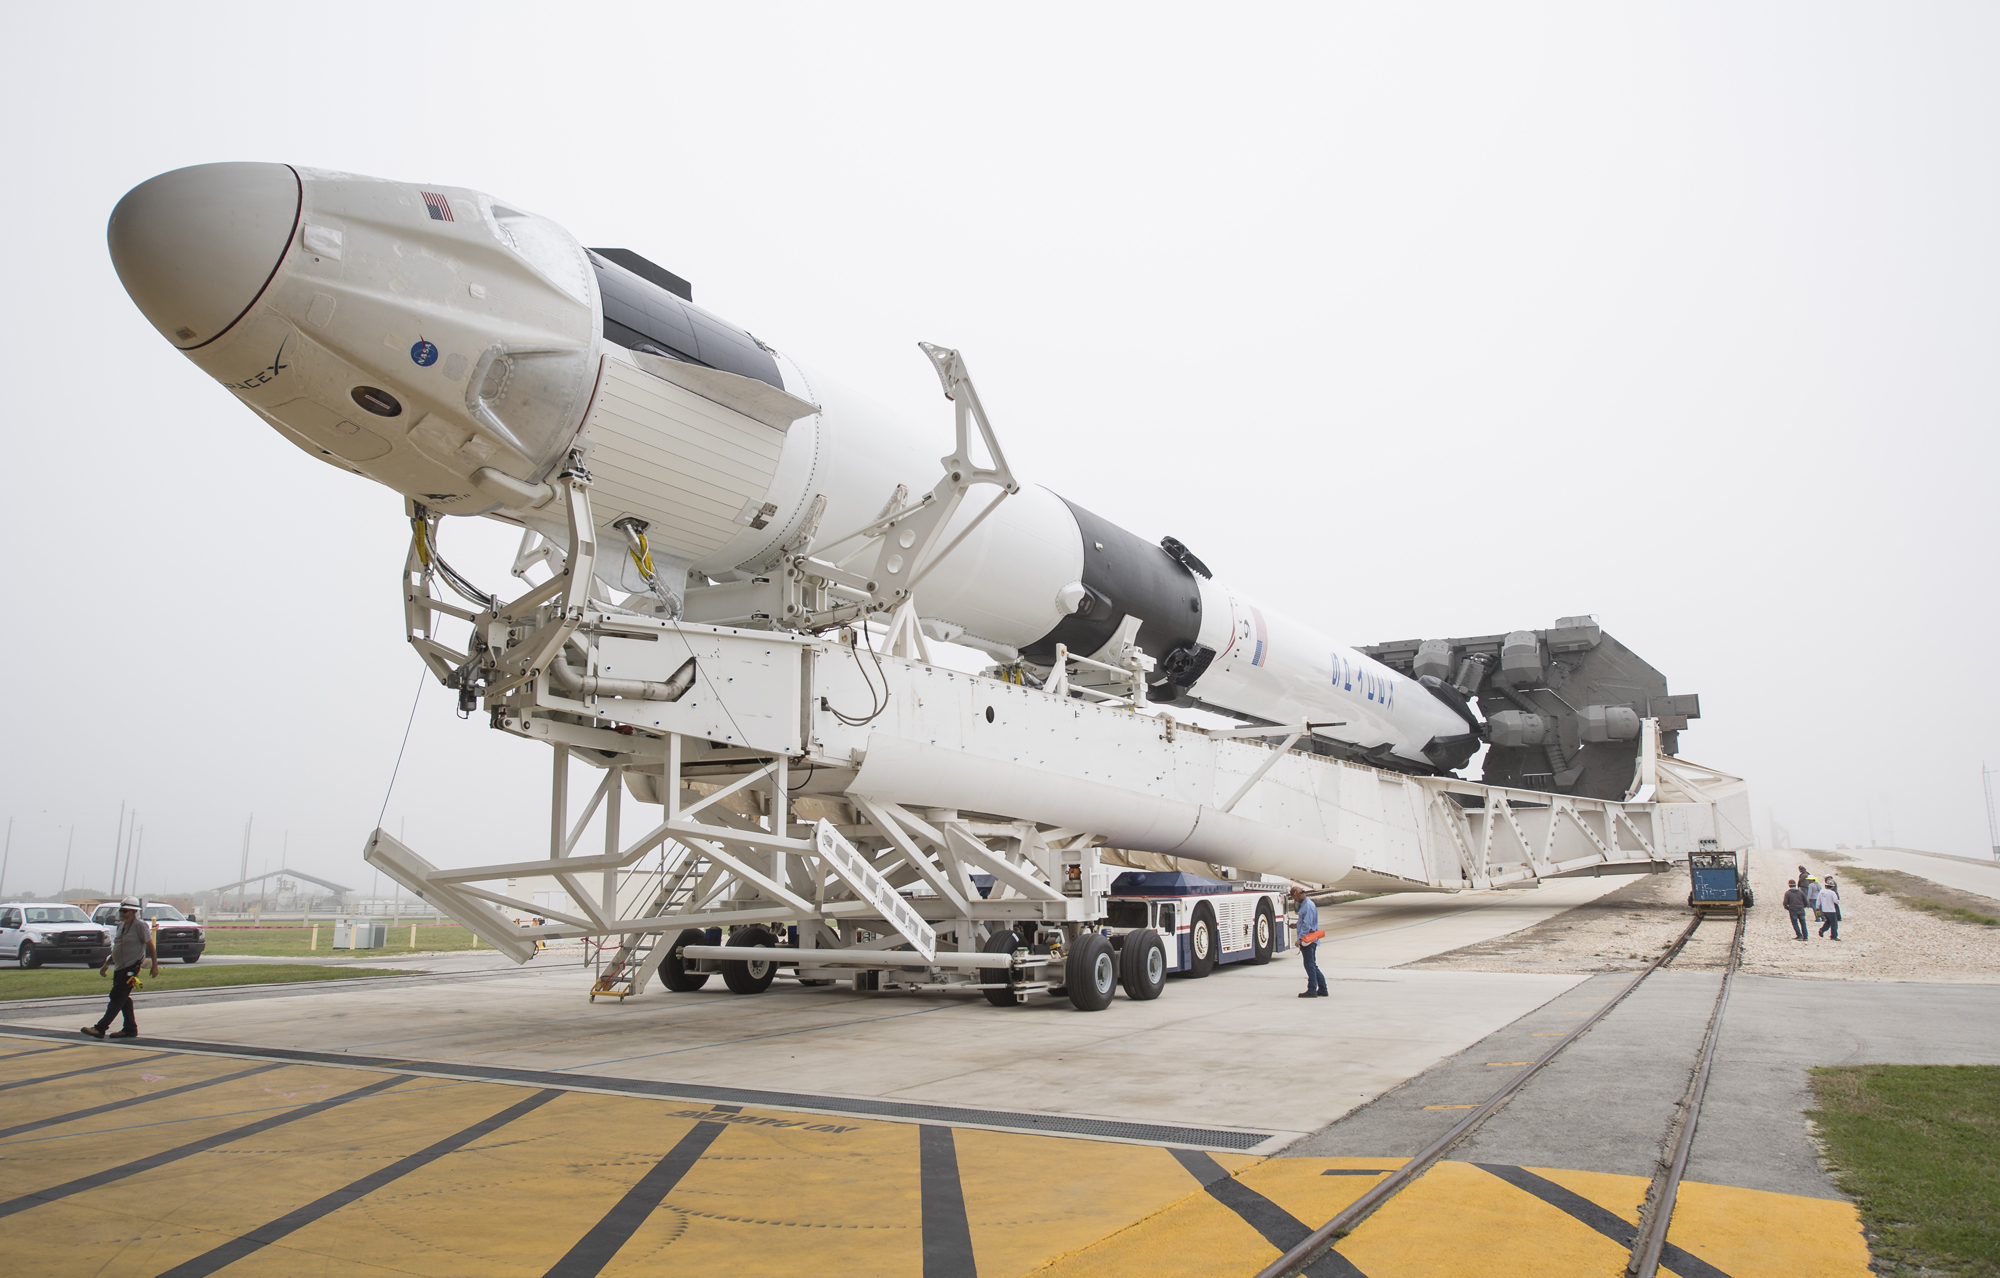 It's Just About 'Go' Time for SpaceX's 1st Crew Dragon Spaceship   Space